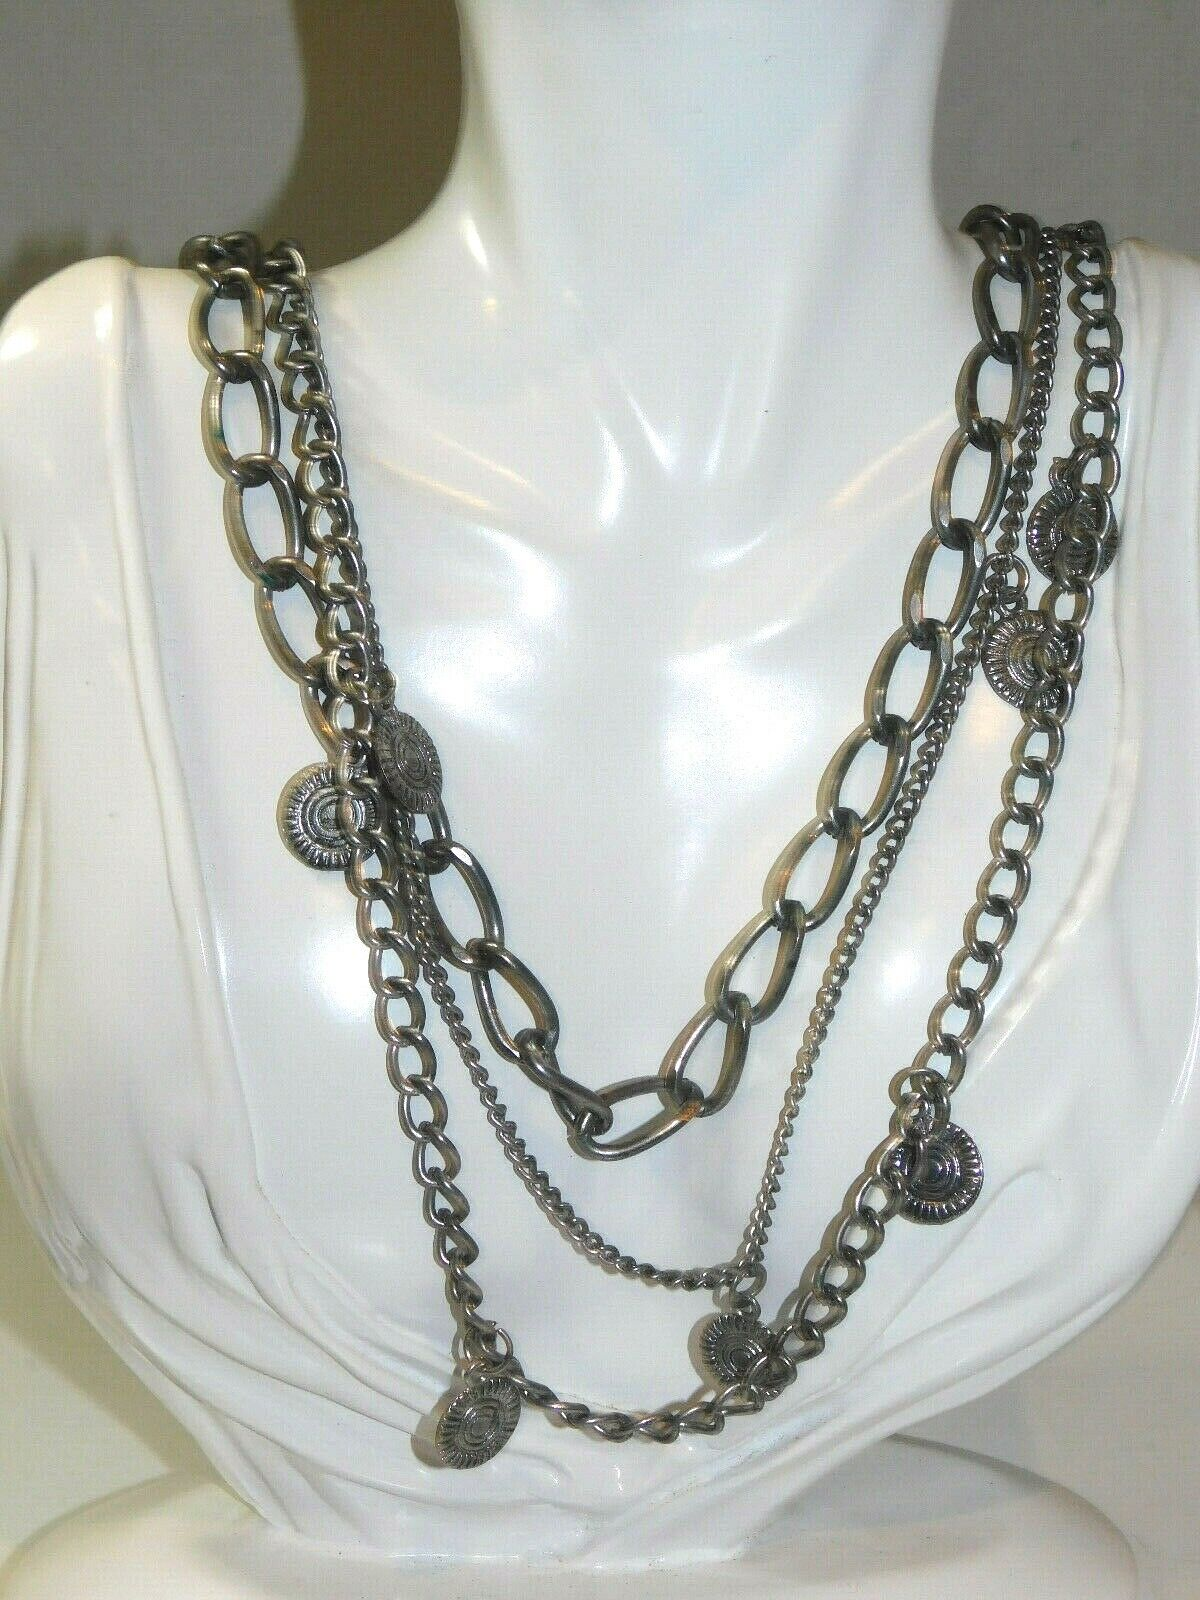 Big link chain locket charm triple strand silver tone necklace 3 t 1a 12